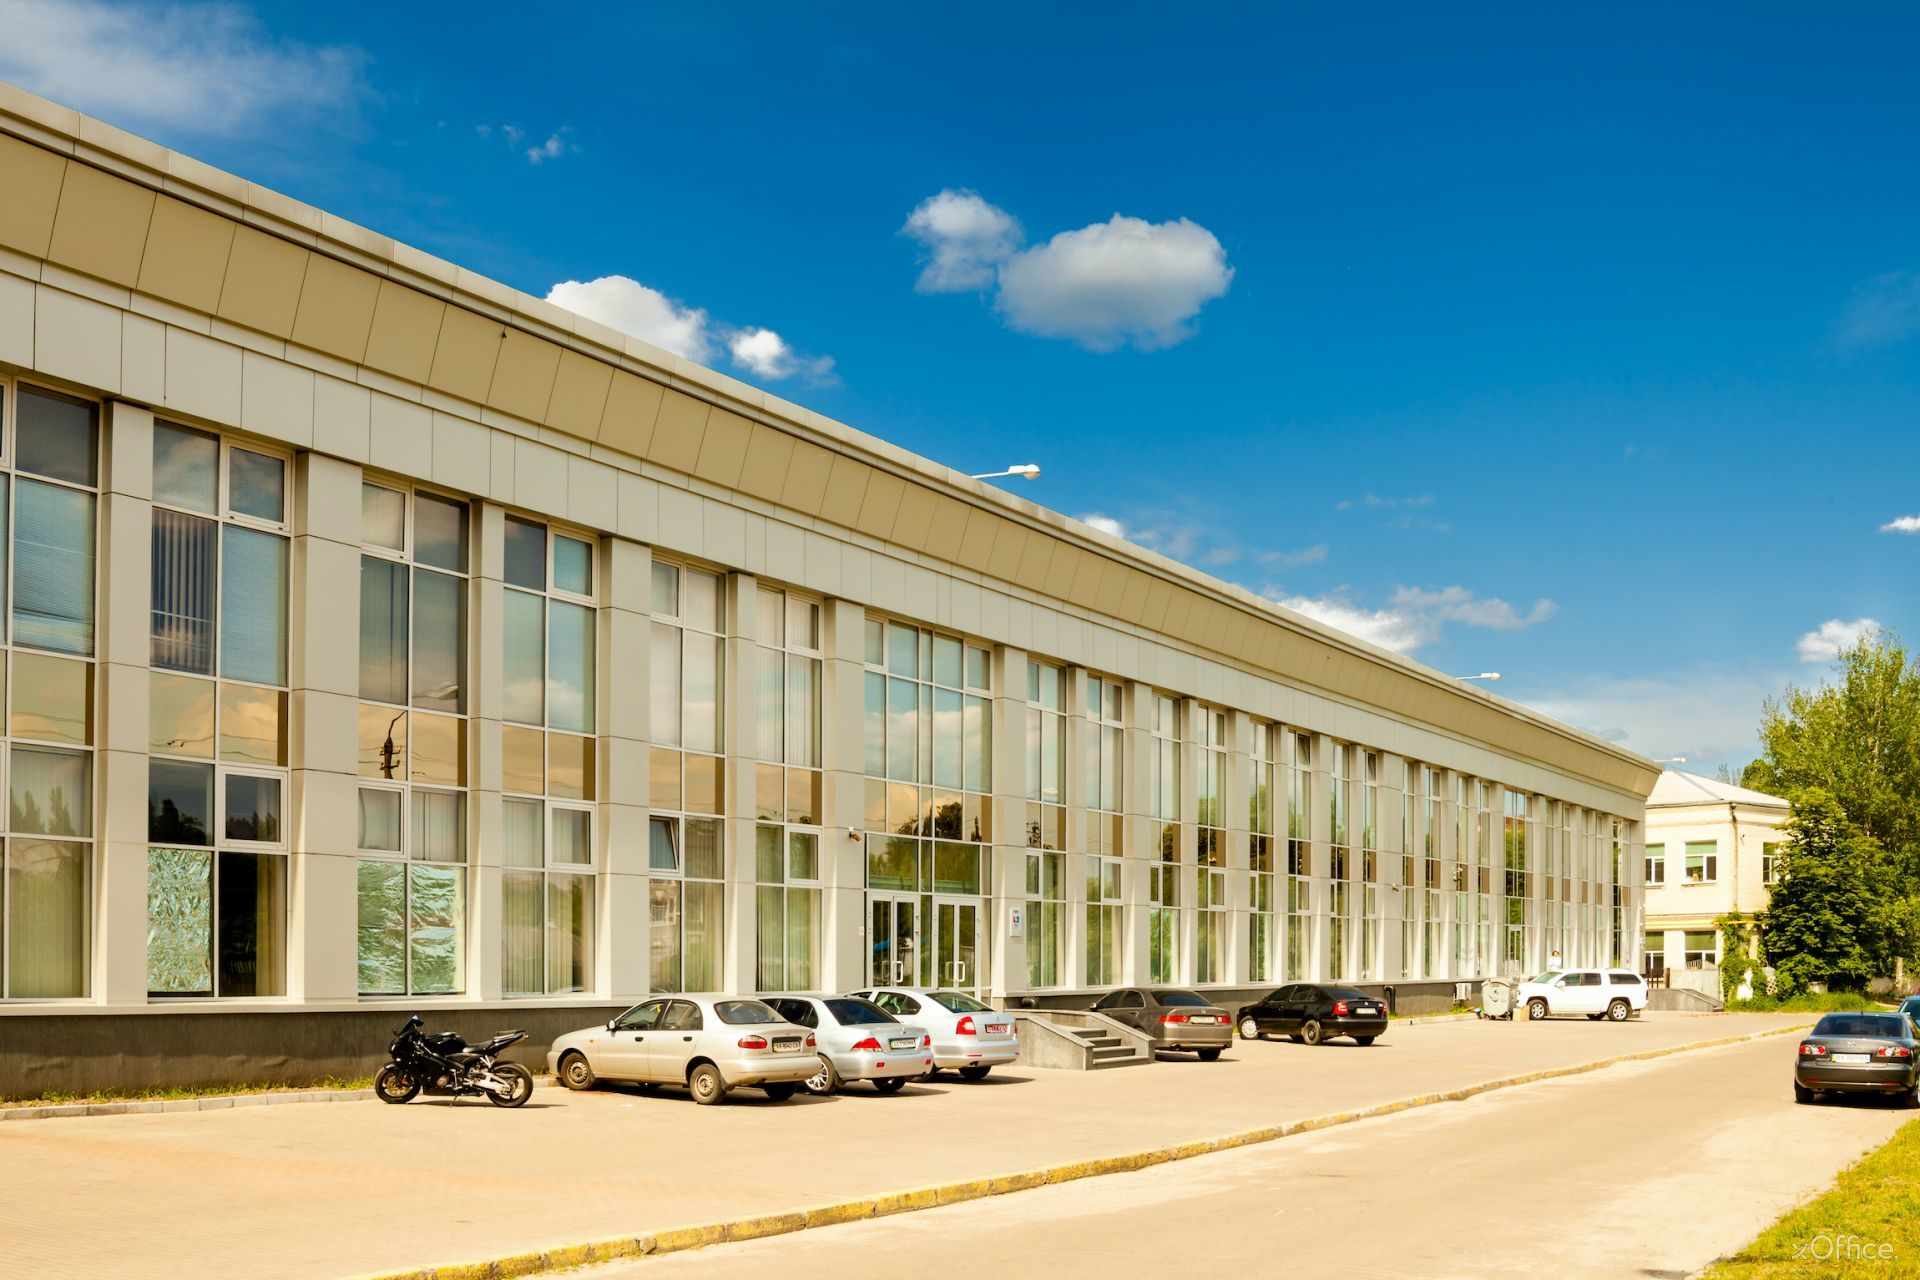 polyova_24_ibc_capital_xoffice